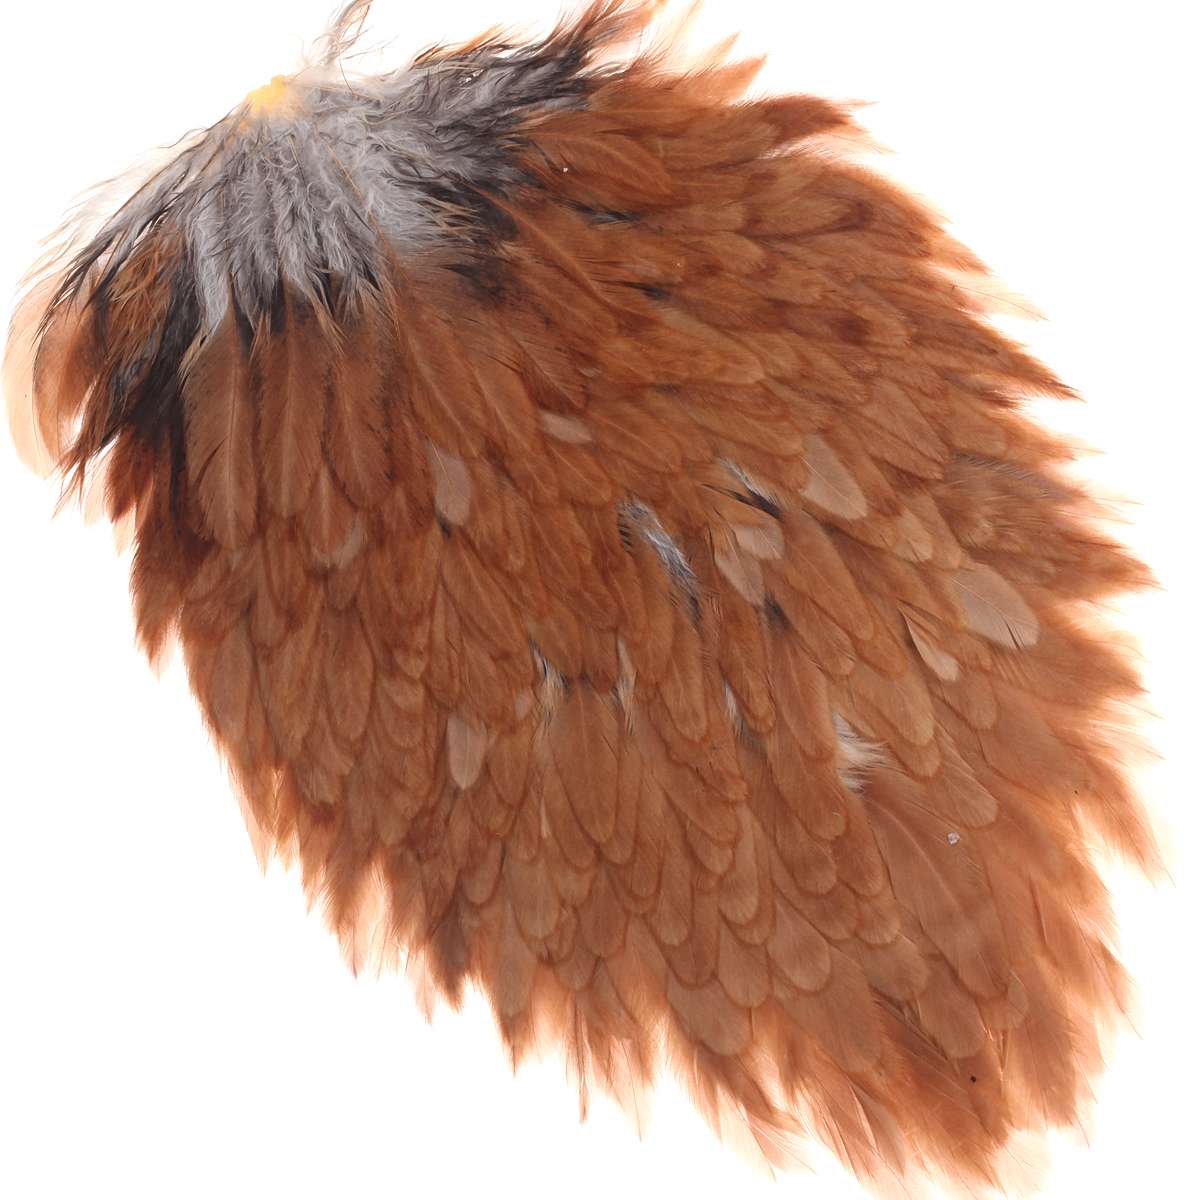 Keough Hackle Hen Saddles